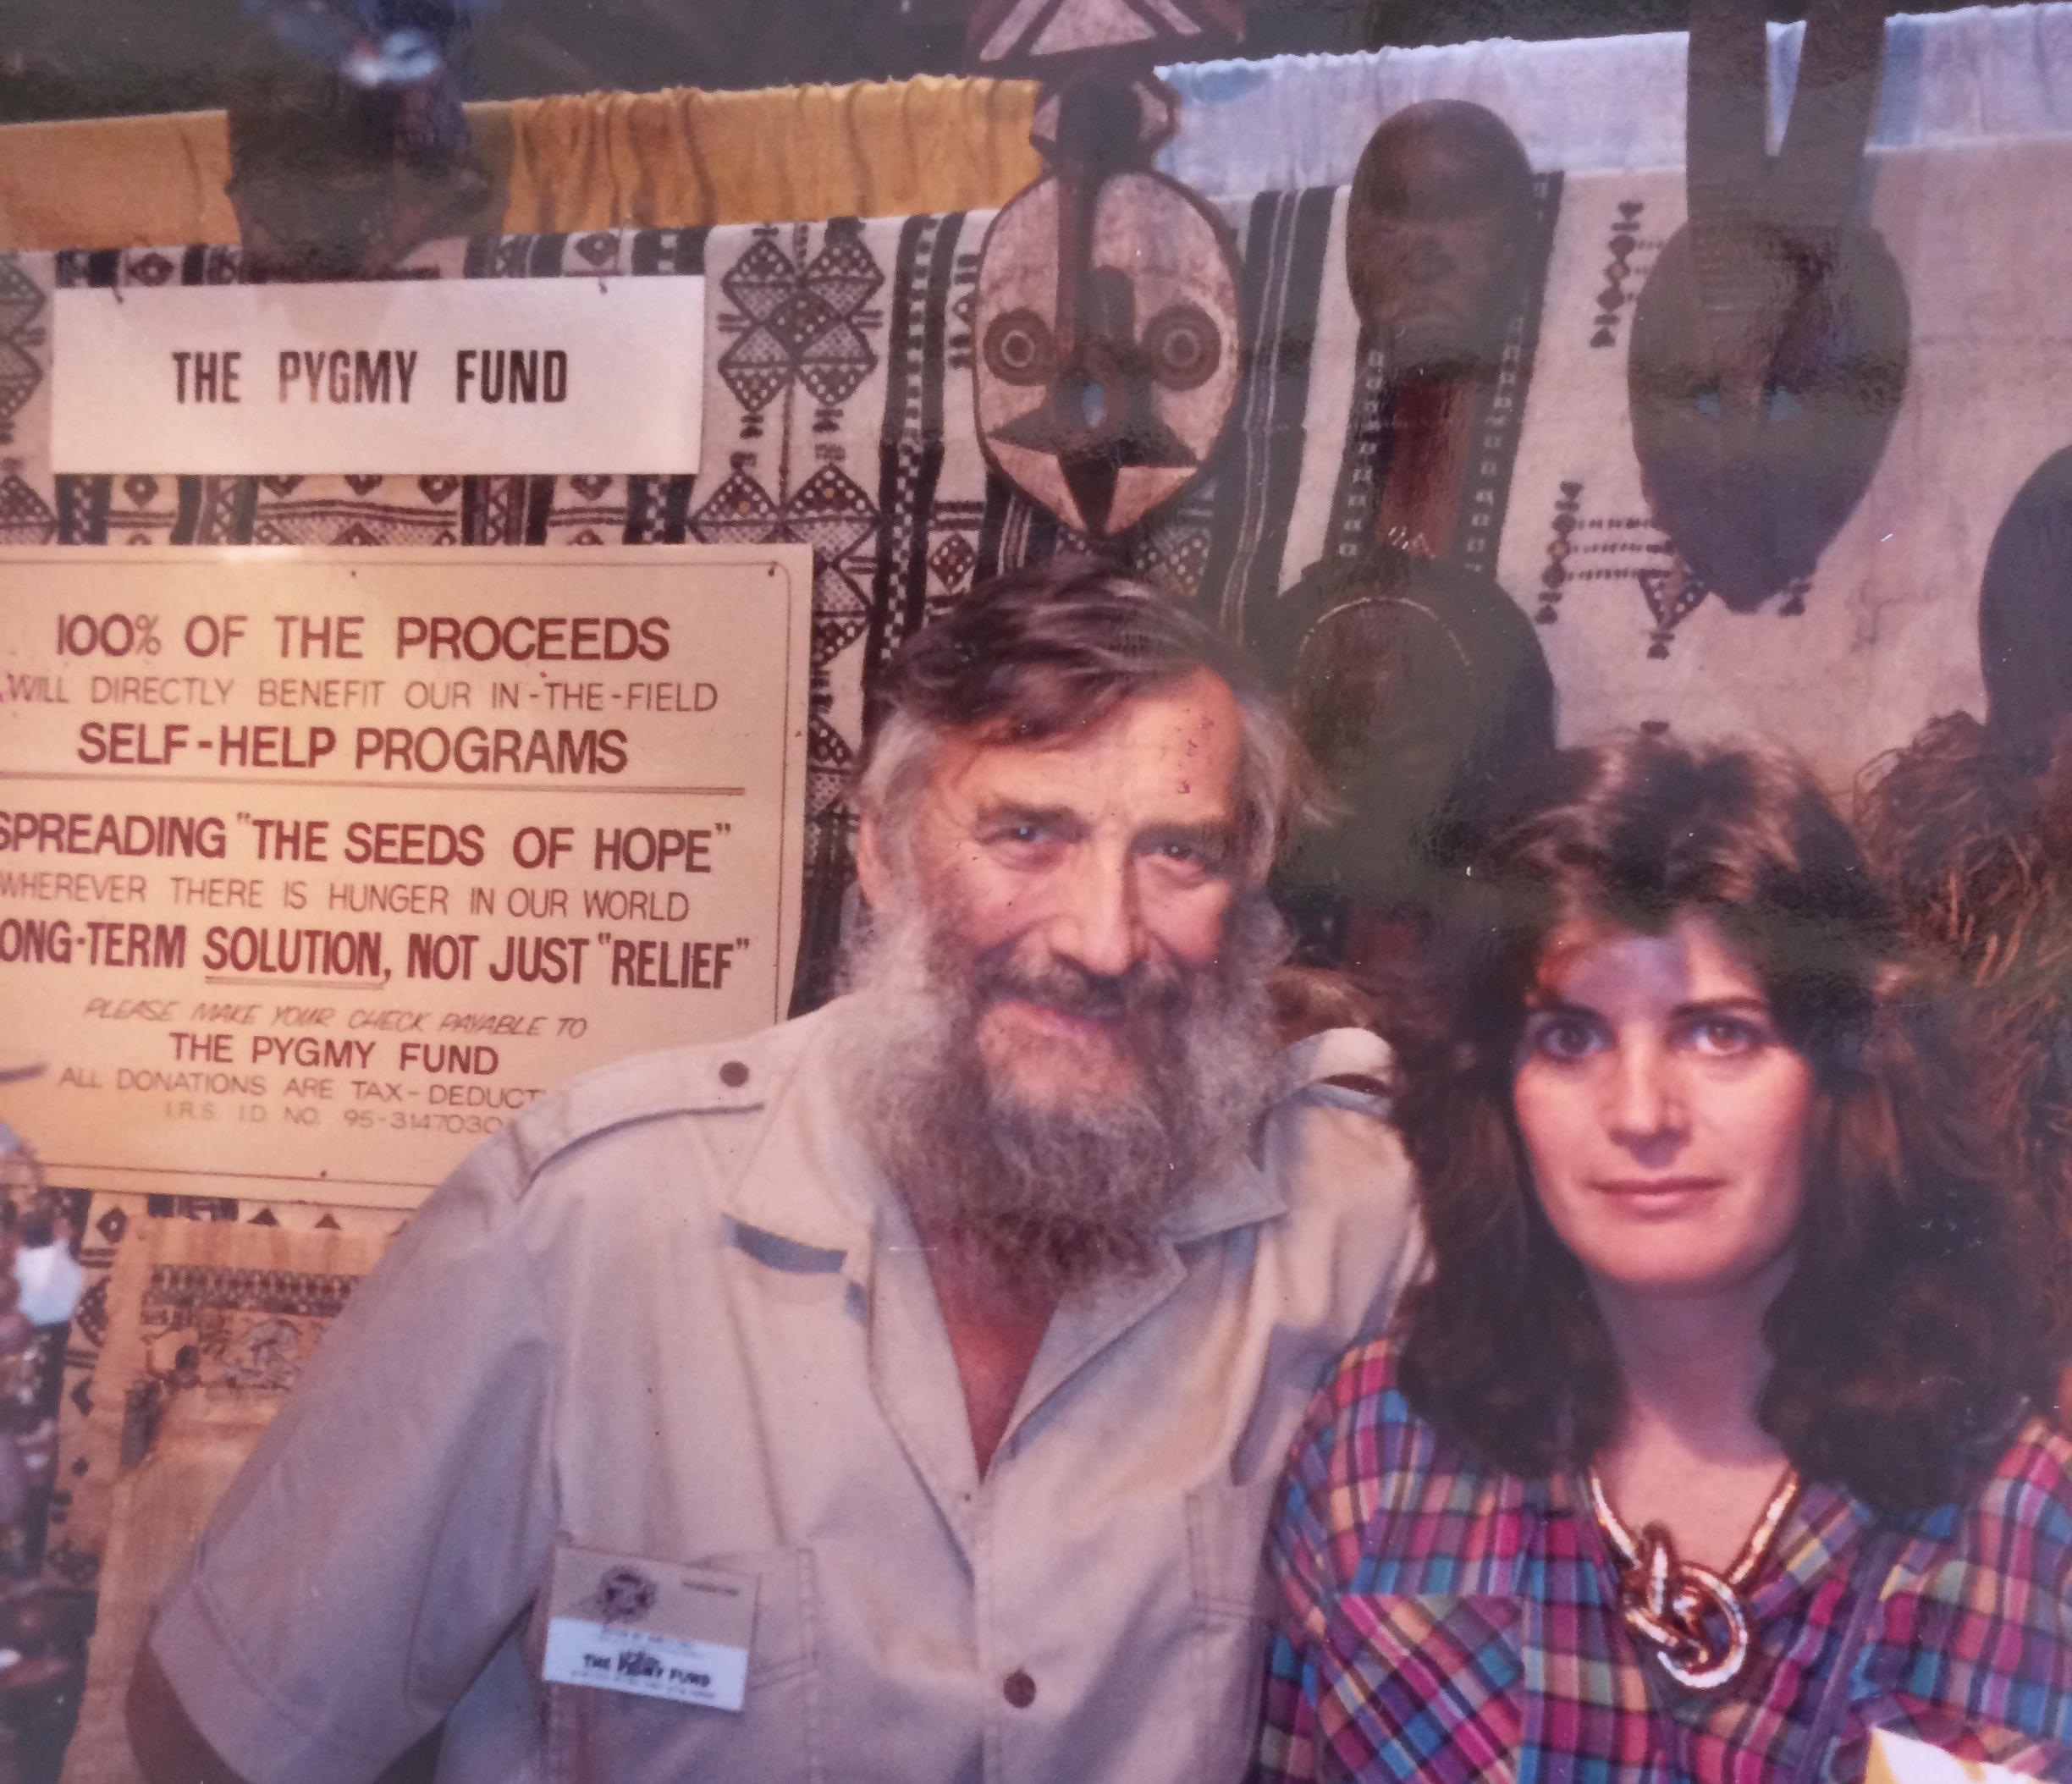 Sooz Fassberg and JP Hallet met back in 1984. Here she joined him at his shop in Santa Monica where he sold beads and African artwork to support ongoing efforts on behalf of the Pygmies.